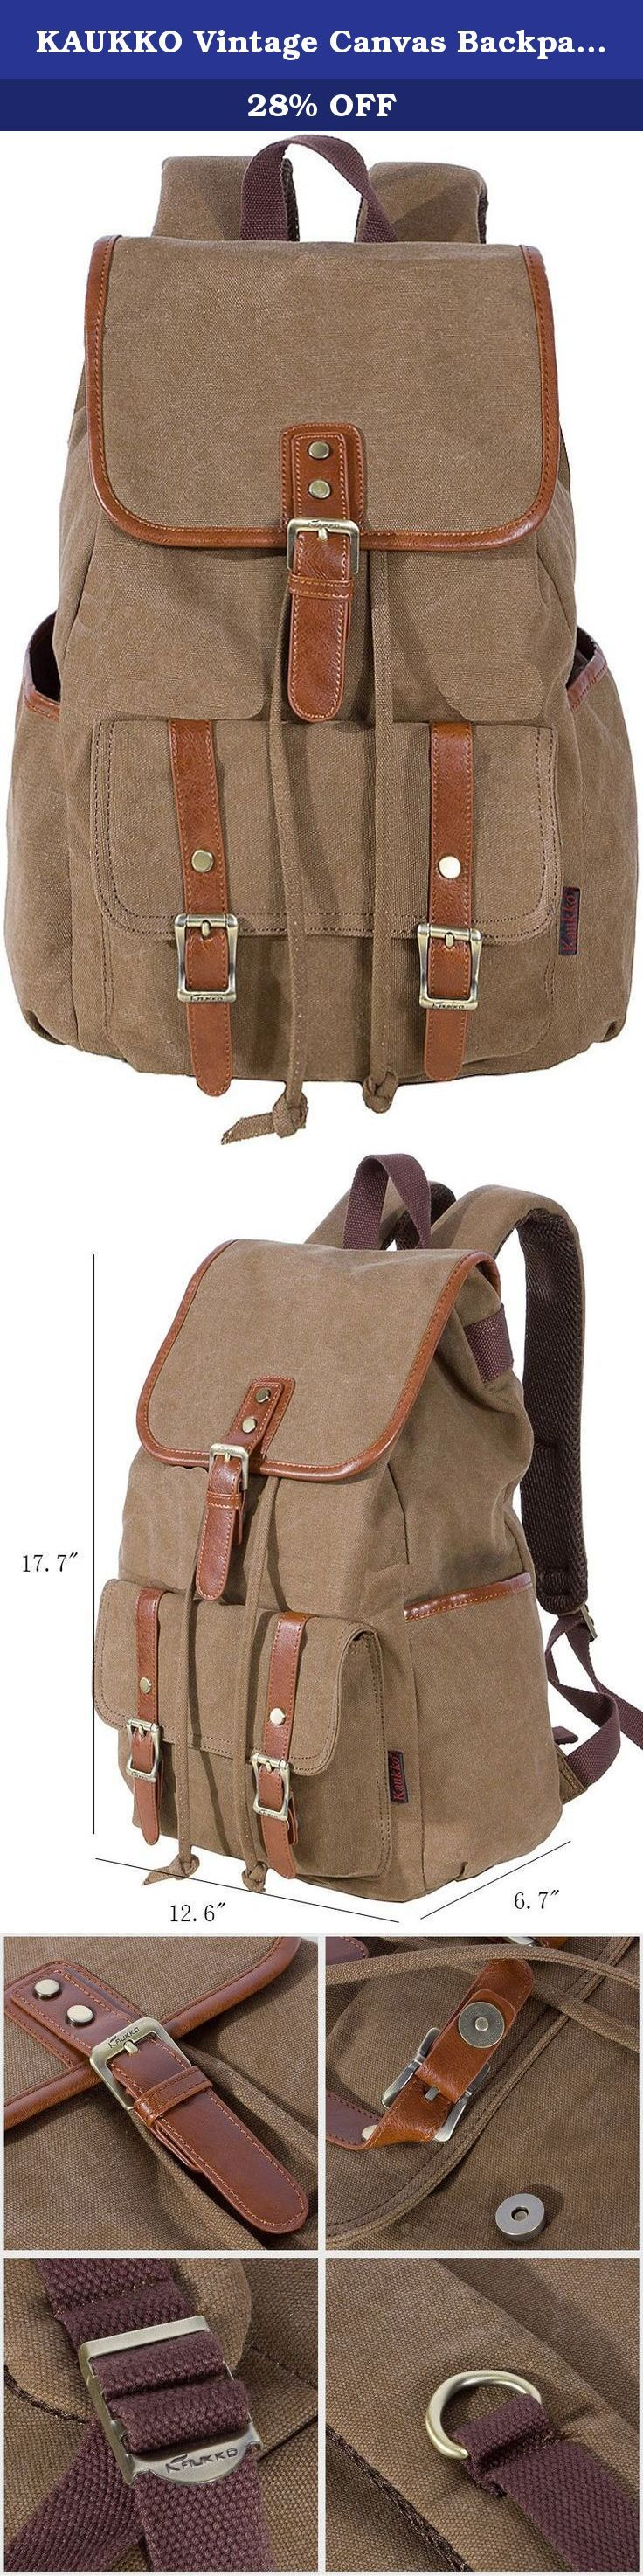 KAUKKO Vintage Canvas Backpack Denim Backpacks Rucksack Casual Daypacks for Young Women Teen Girls Satchel Hiking Bag Khaki. Product Description Special Feature 1.Mainly made with waterproof cotton canvas, retro and compatible design. 2.Special washing process: No fade, No deformation,No shrink. very healthy to carry . 3.Large capacity design, laptop ,travel necessities can be loaded. 4.Function analysis:The unique buckle design with the magnets, more flexible to carry. 5. tough straps…